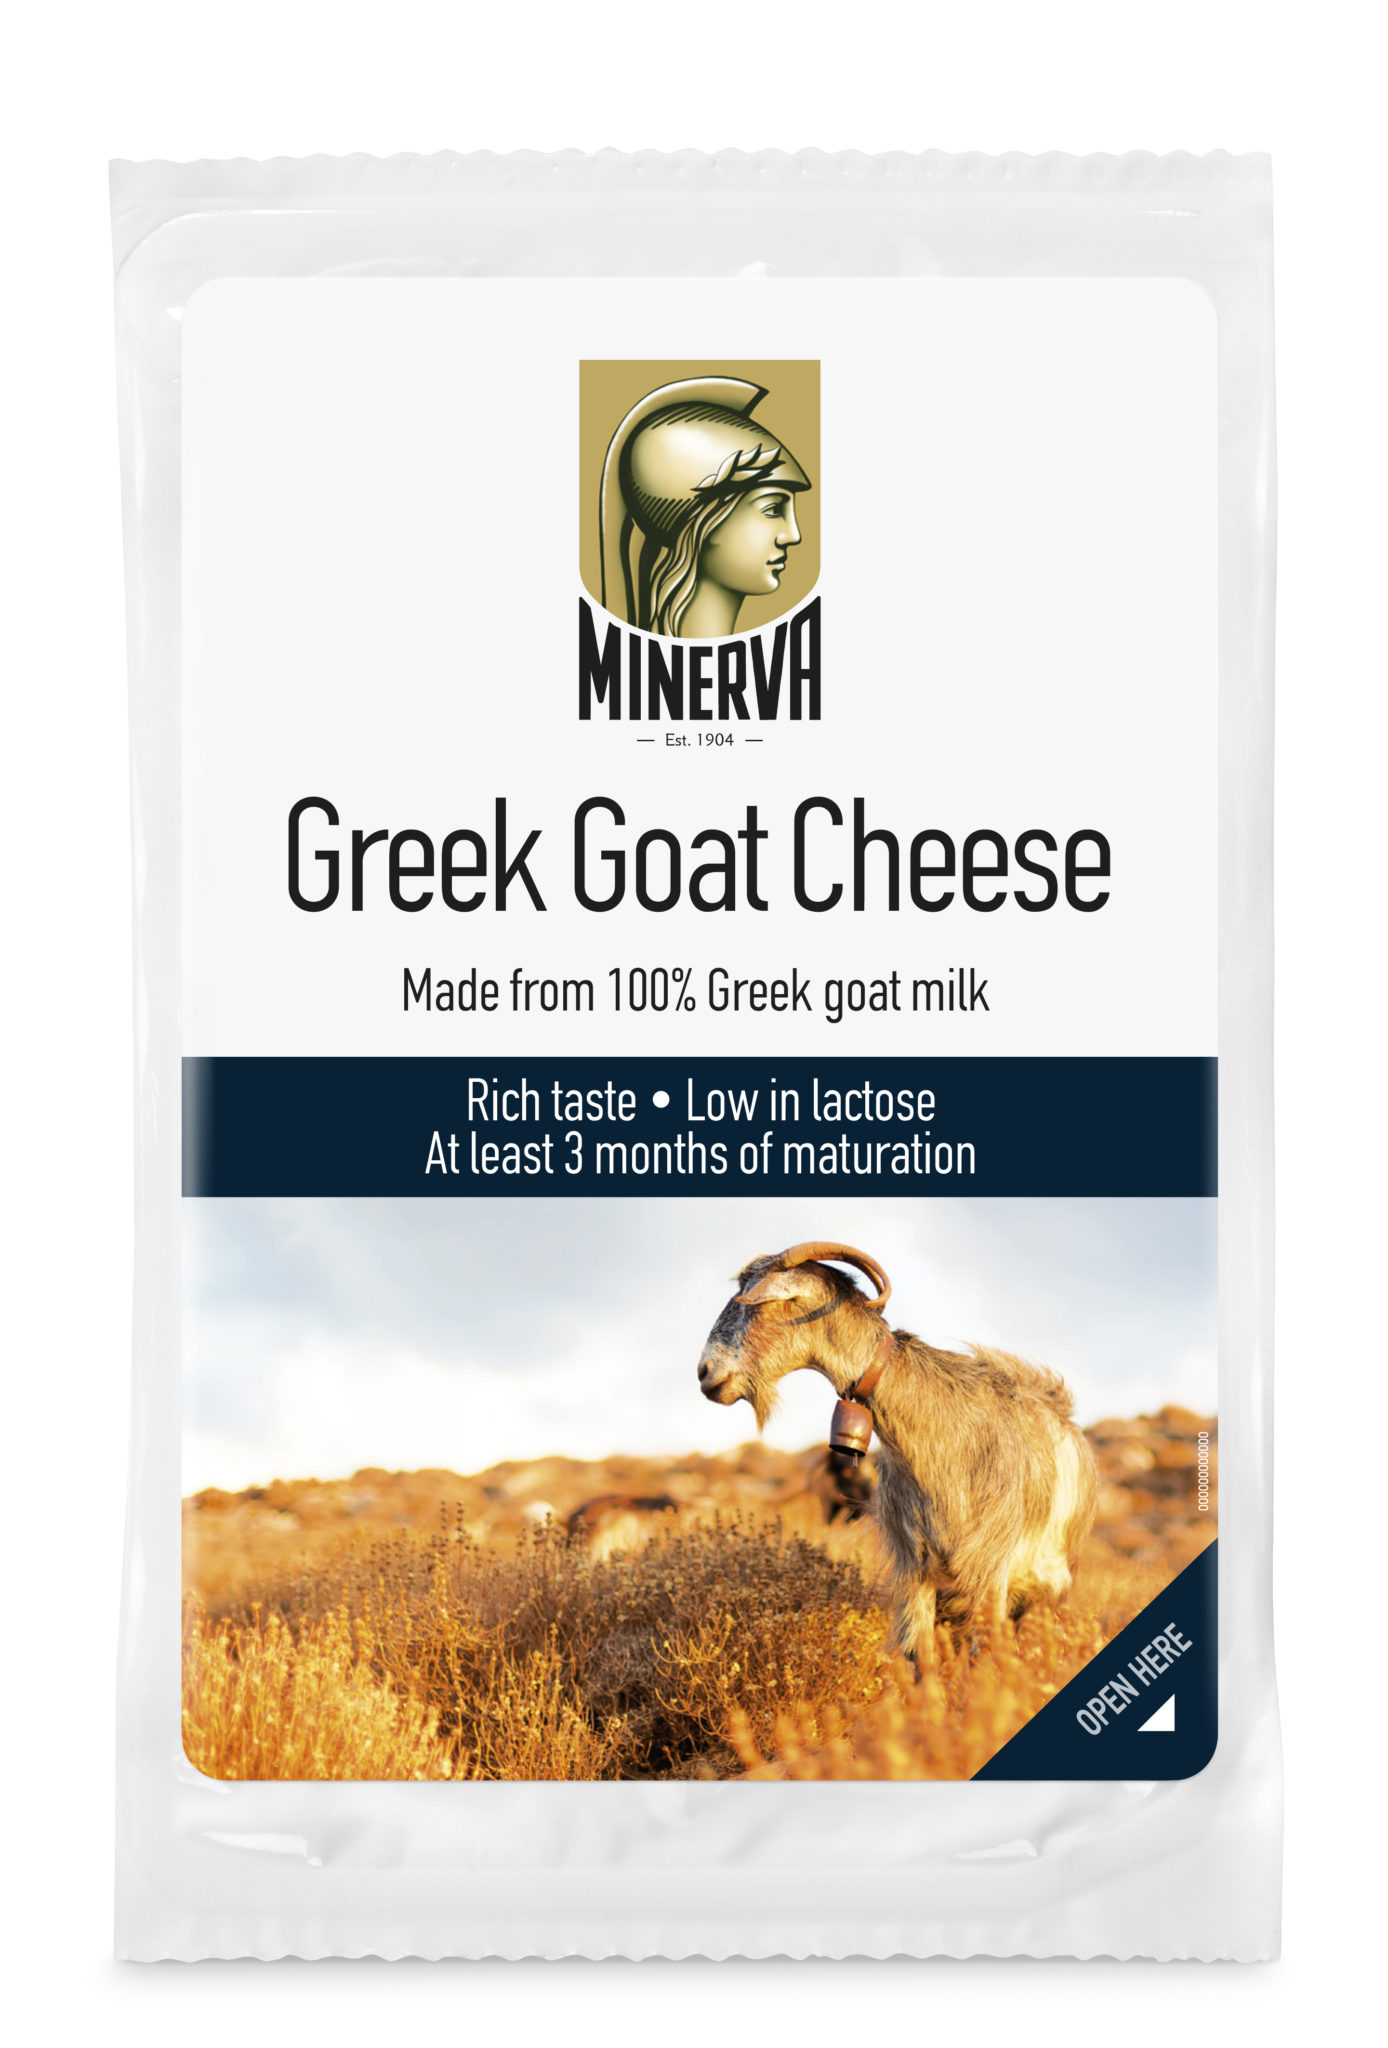 Minerva Goat Cheese